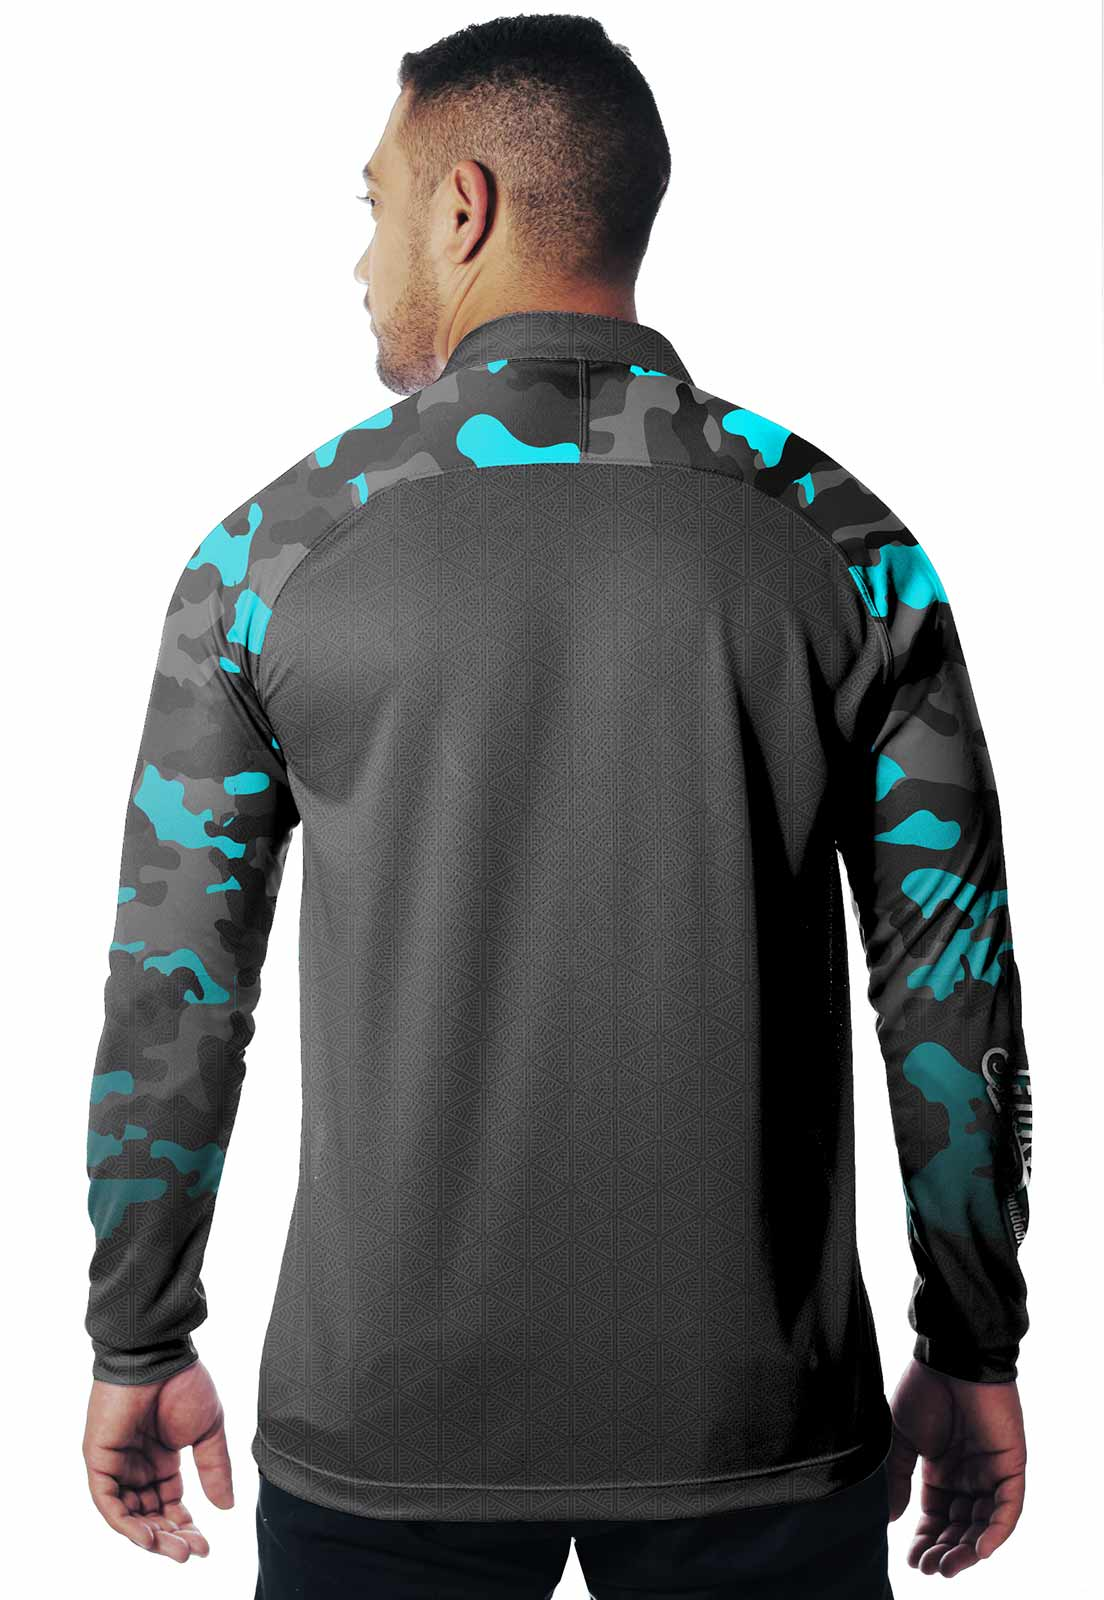 CAMISA DE PESCA FISH PRO 19 MASCULINA + BANDANA GRÁTIS  - REAL HUNTER OUTDOORS